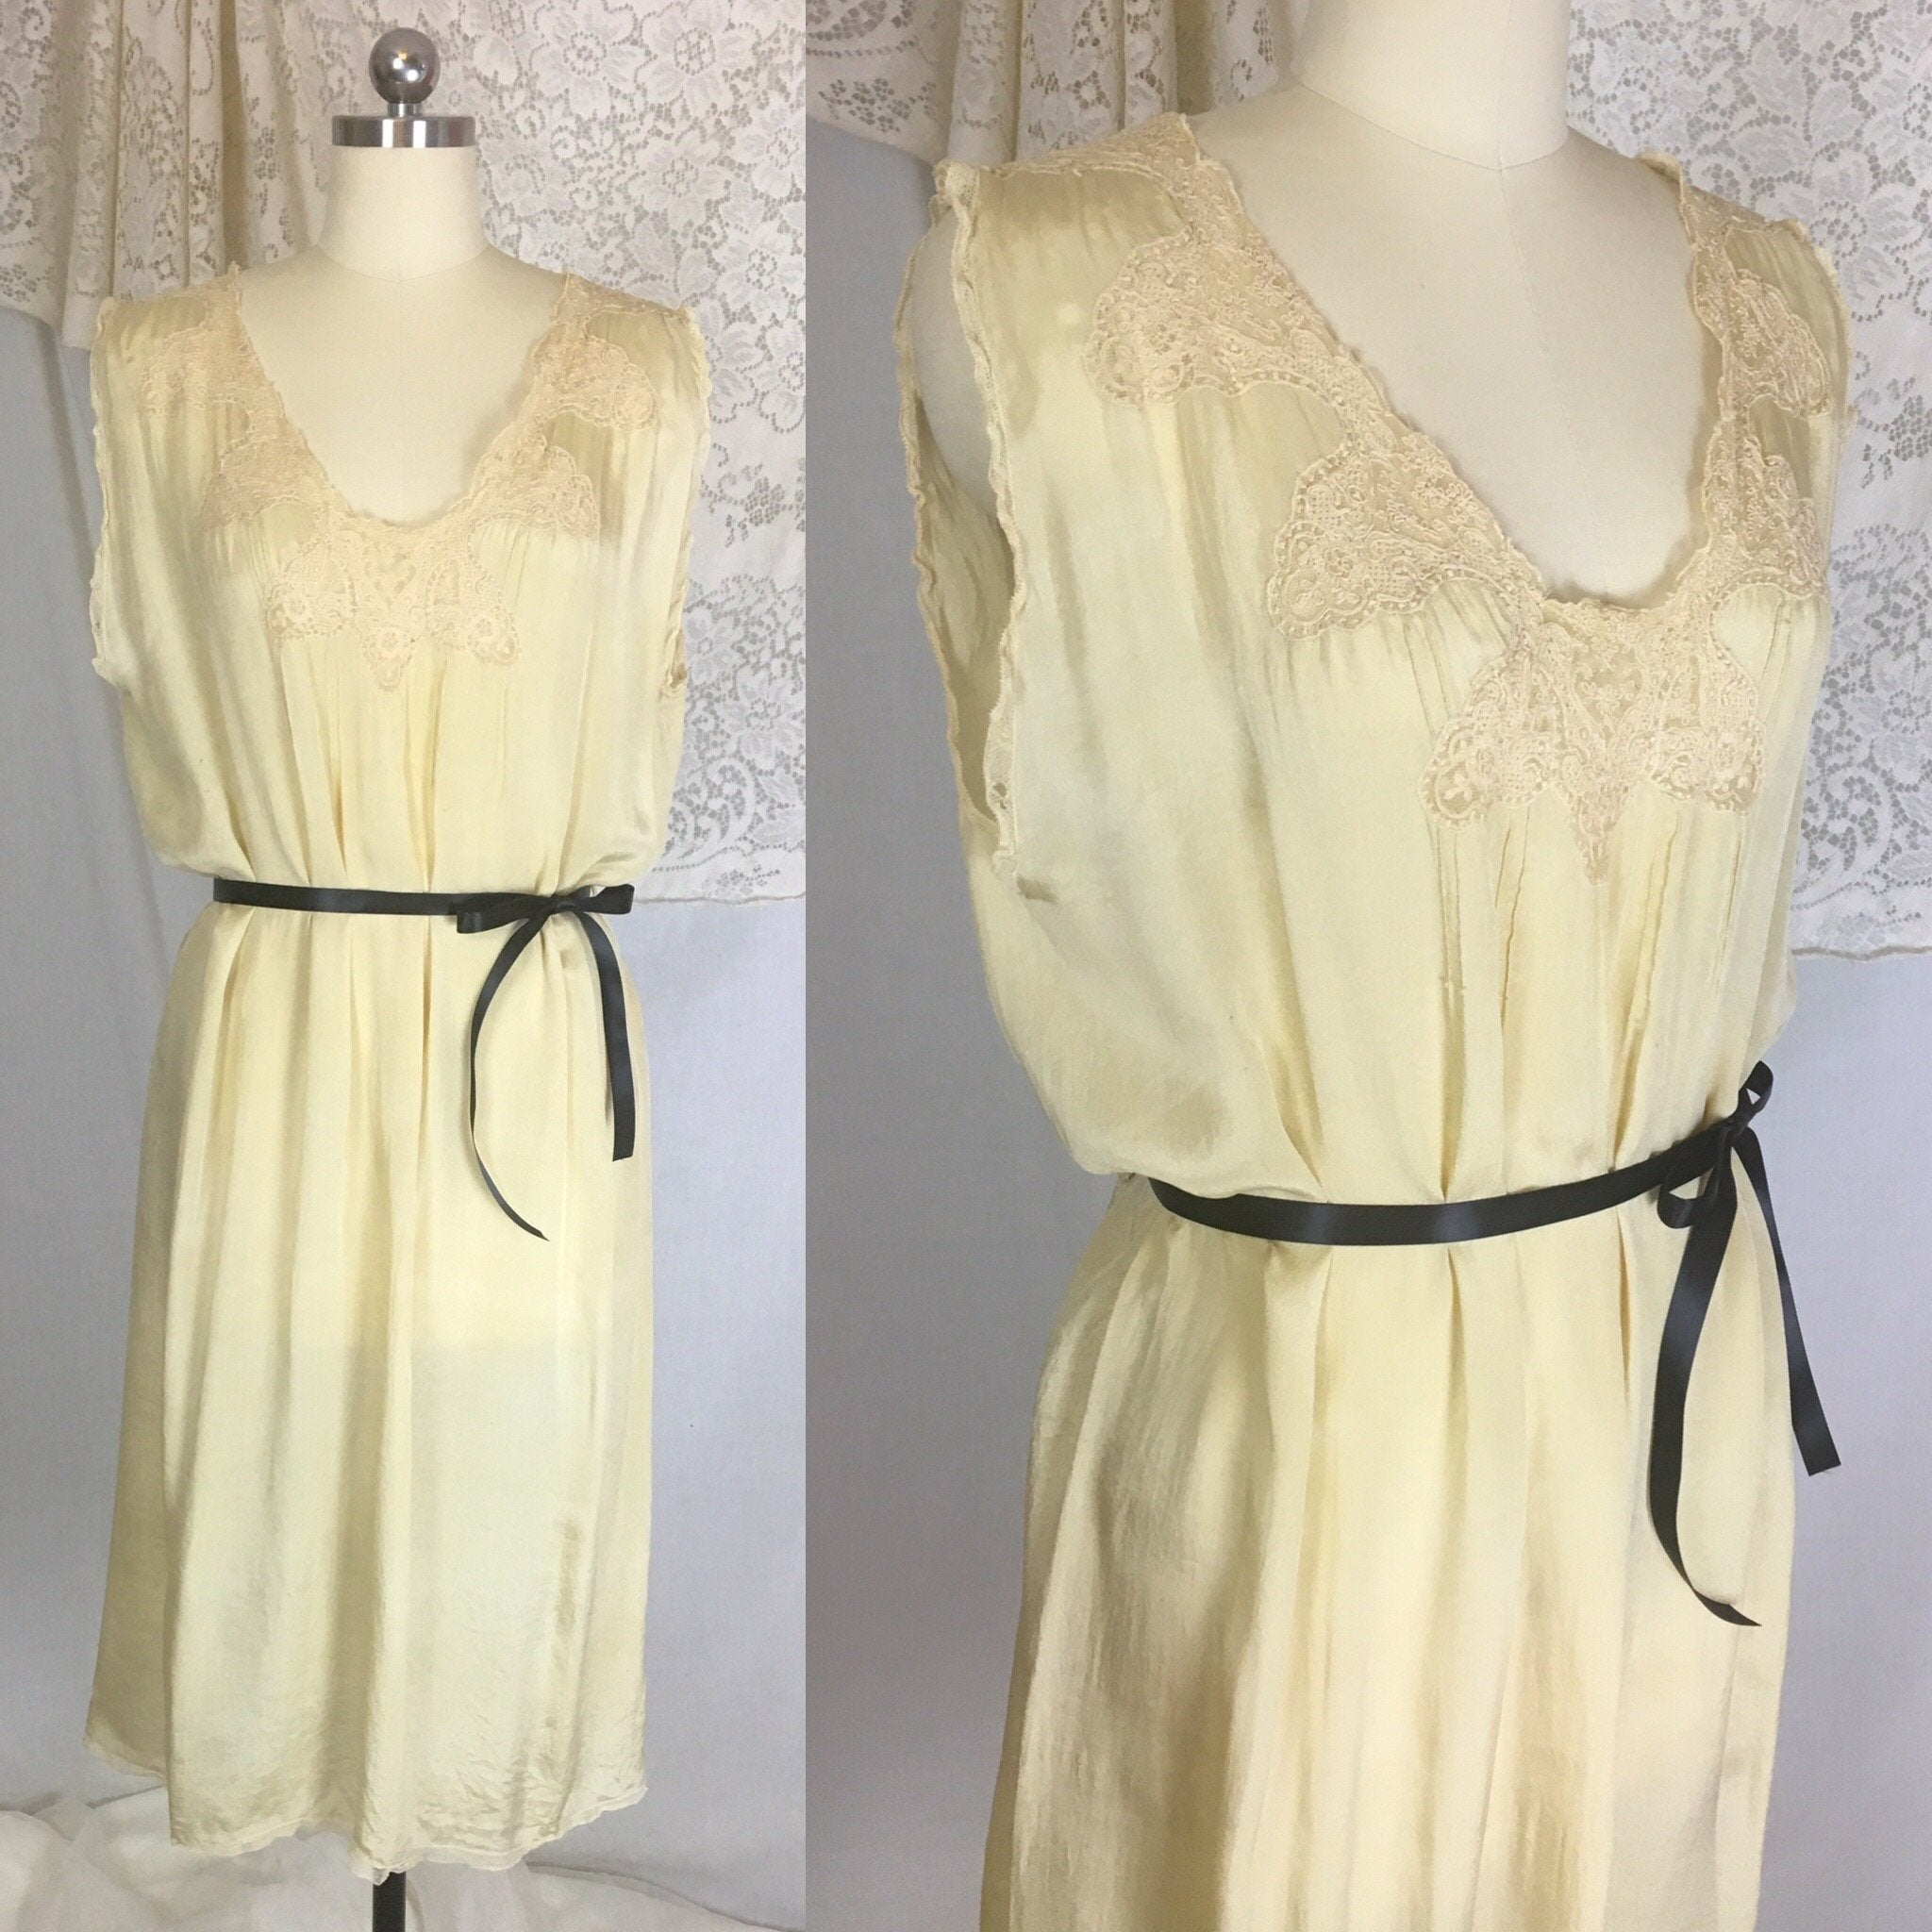 Vintage 1920's Nightgown | Gold Tissue Silk with Tambour Lace & Black Ribbon Tie | Size Free - Daggers & Dames